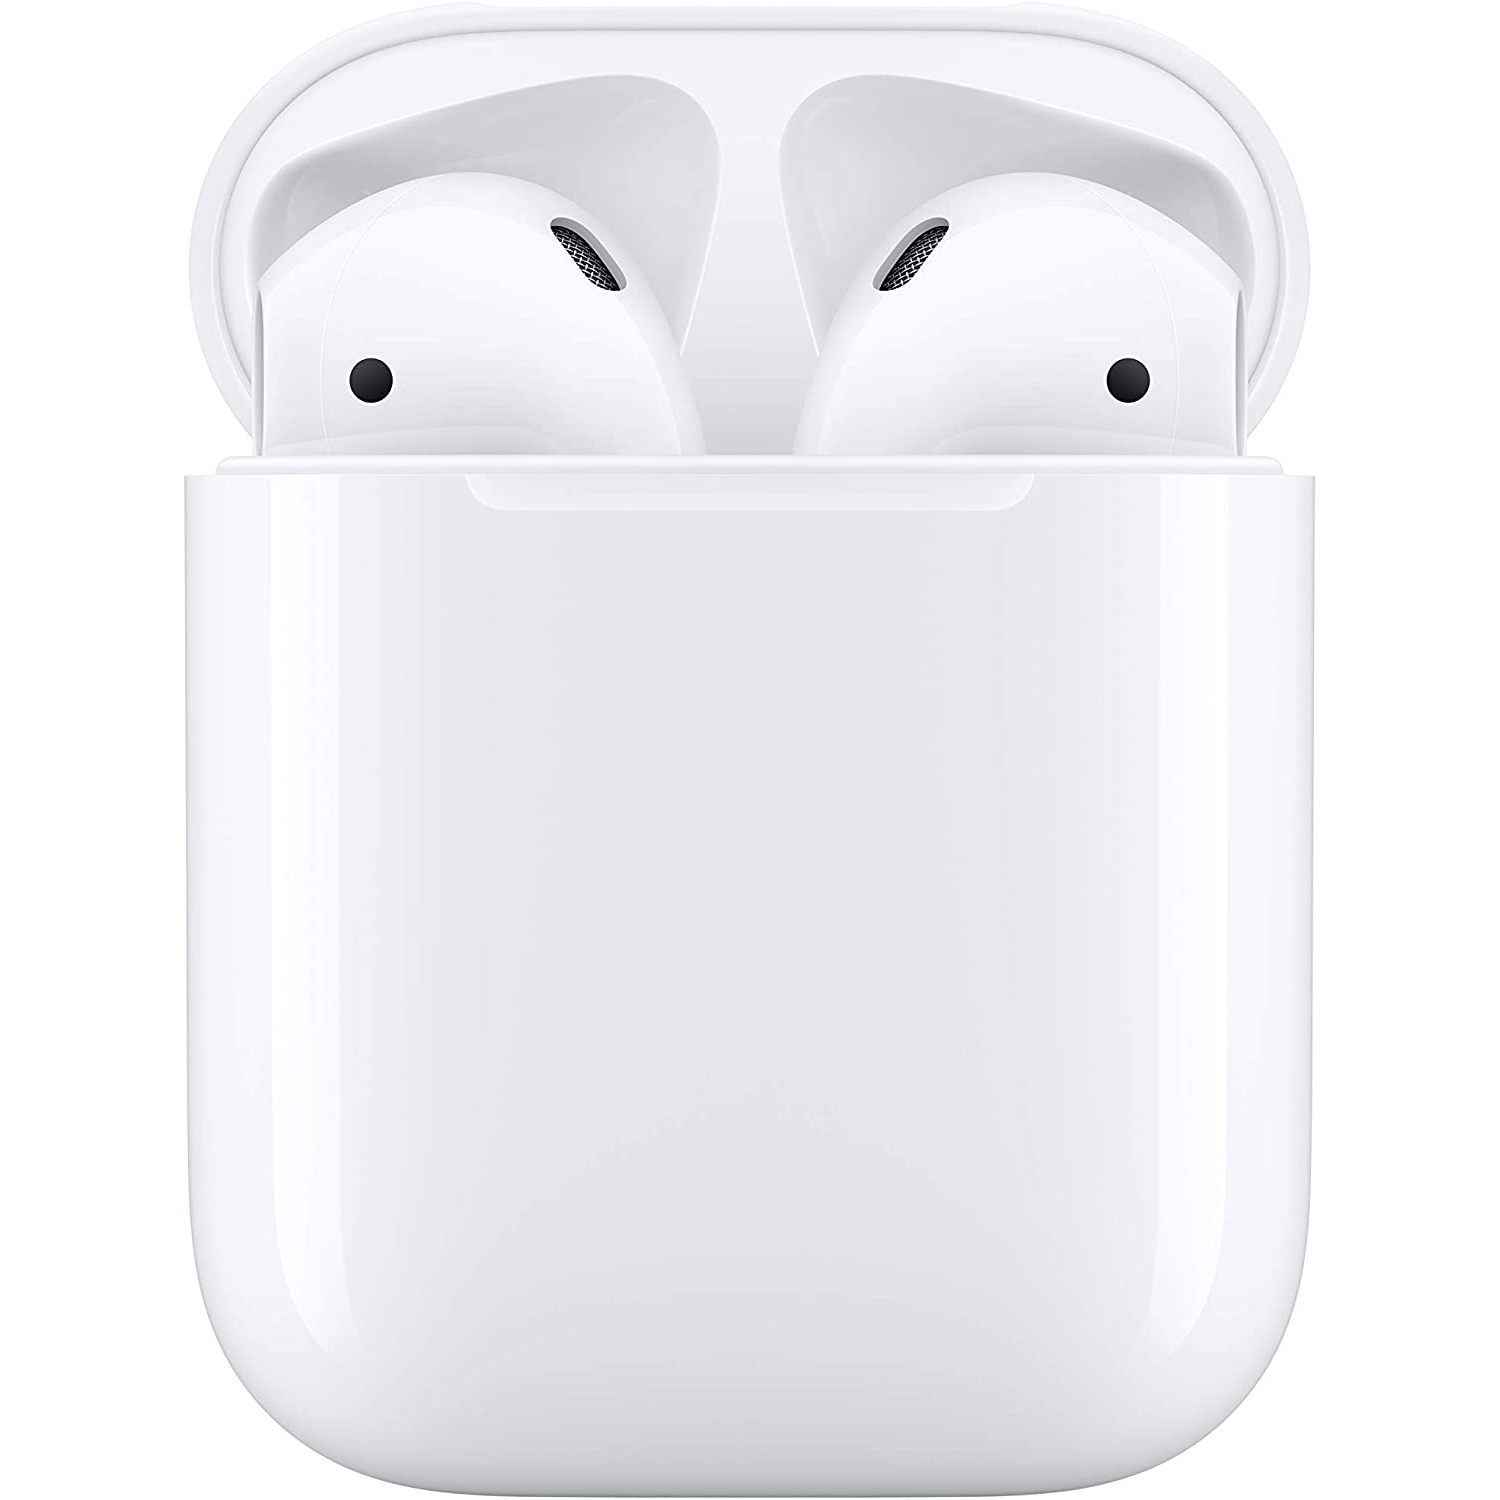 Apple AirPods from Amazon